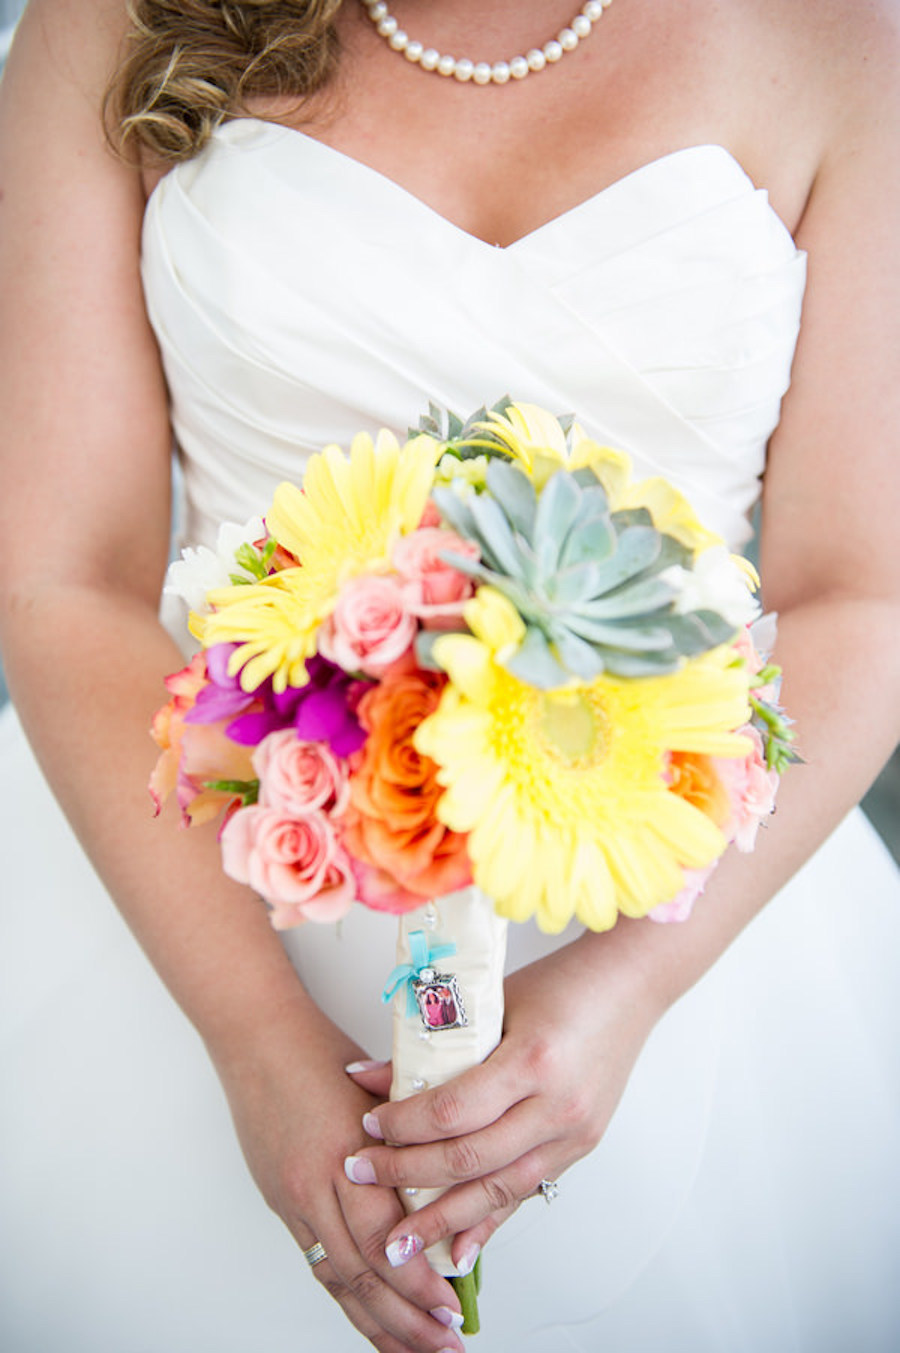 Bridal Wedding Day Portrait in Strapless Wedding Gown with Pearl Necklace with Vibrant Bouquet with Yellow, Orange and Pink Flowers with Succulent and Memorial Locket   St. Pete Wedding Photographer Andi Diamond Photography